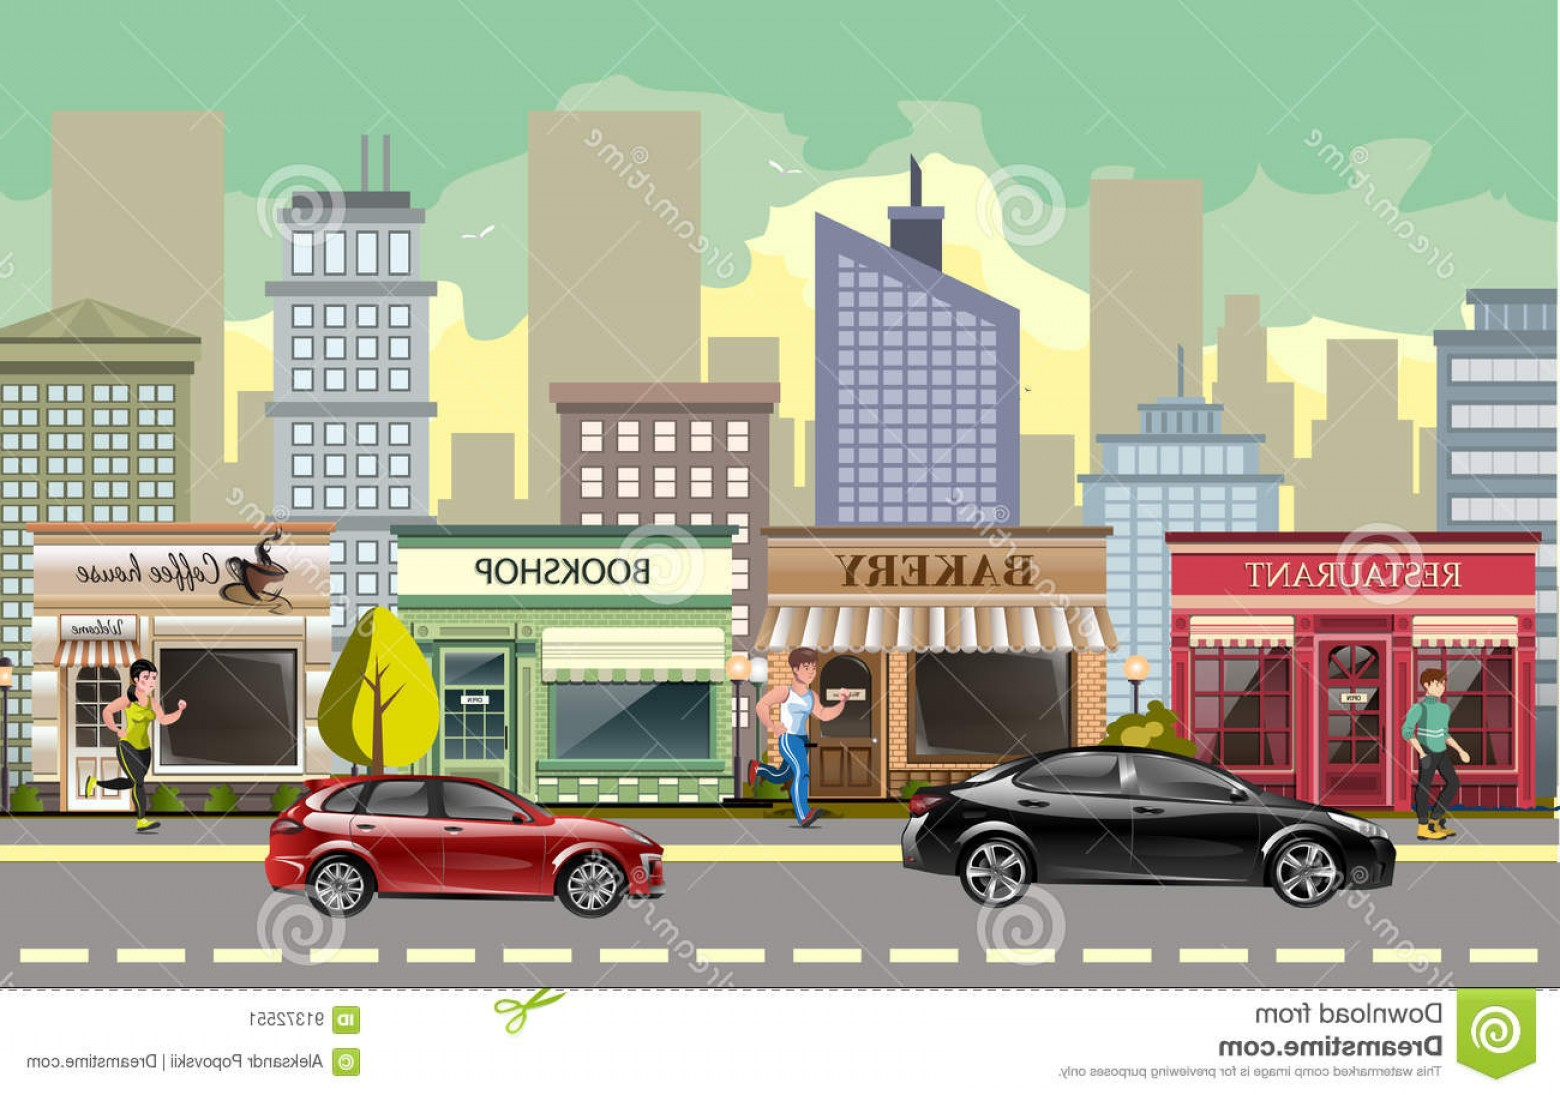 Vector Images Of Cars On Streets: Stock Illustration Landscape Street Cars Flat Vector Cartoon Style Illustration Image